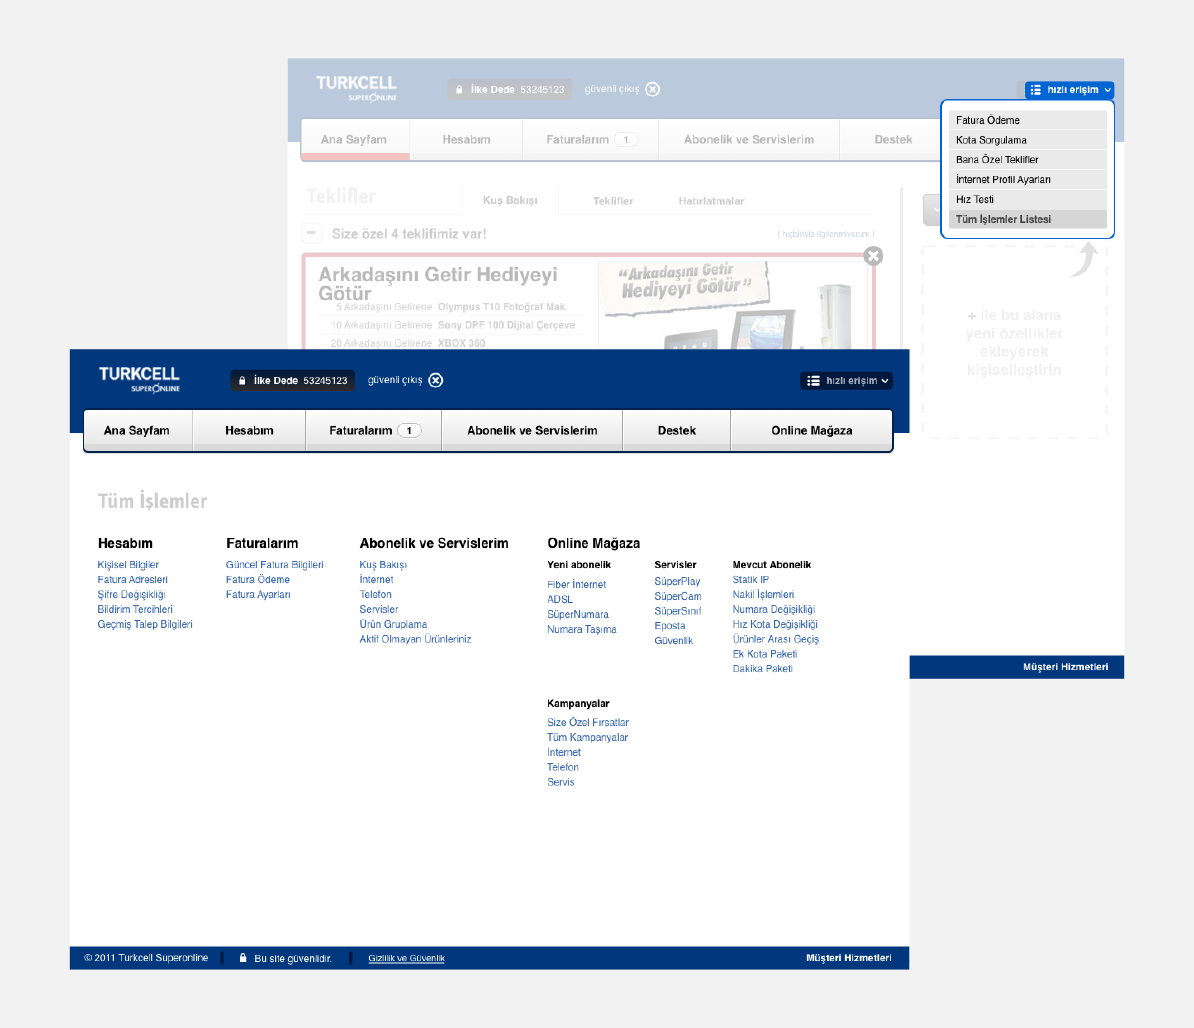 Quick access menu and functionality site index